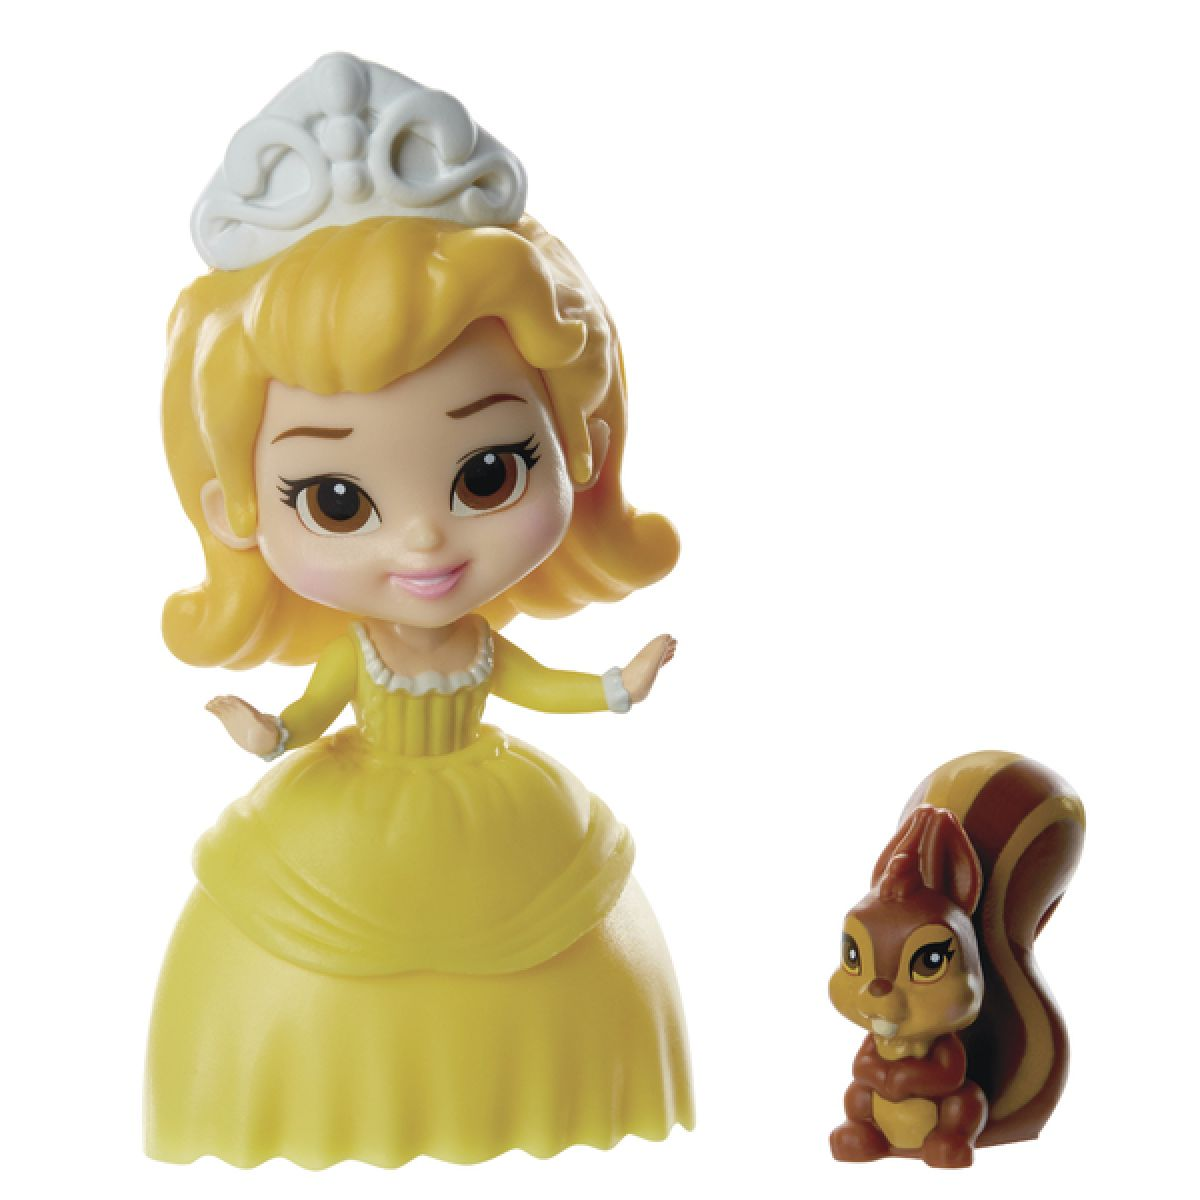 Jakks Pacific Disney Mini princezna a kamarád - Amber and Whatnaught